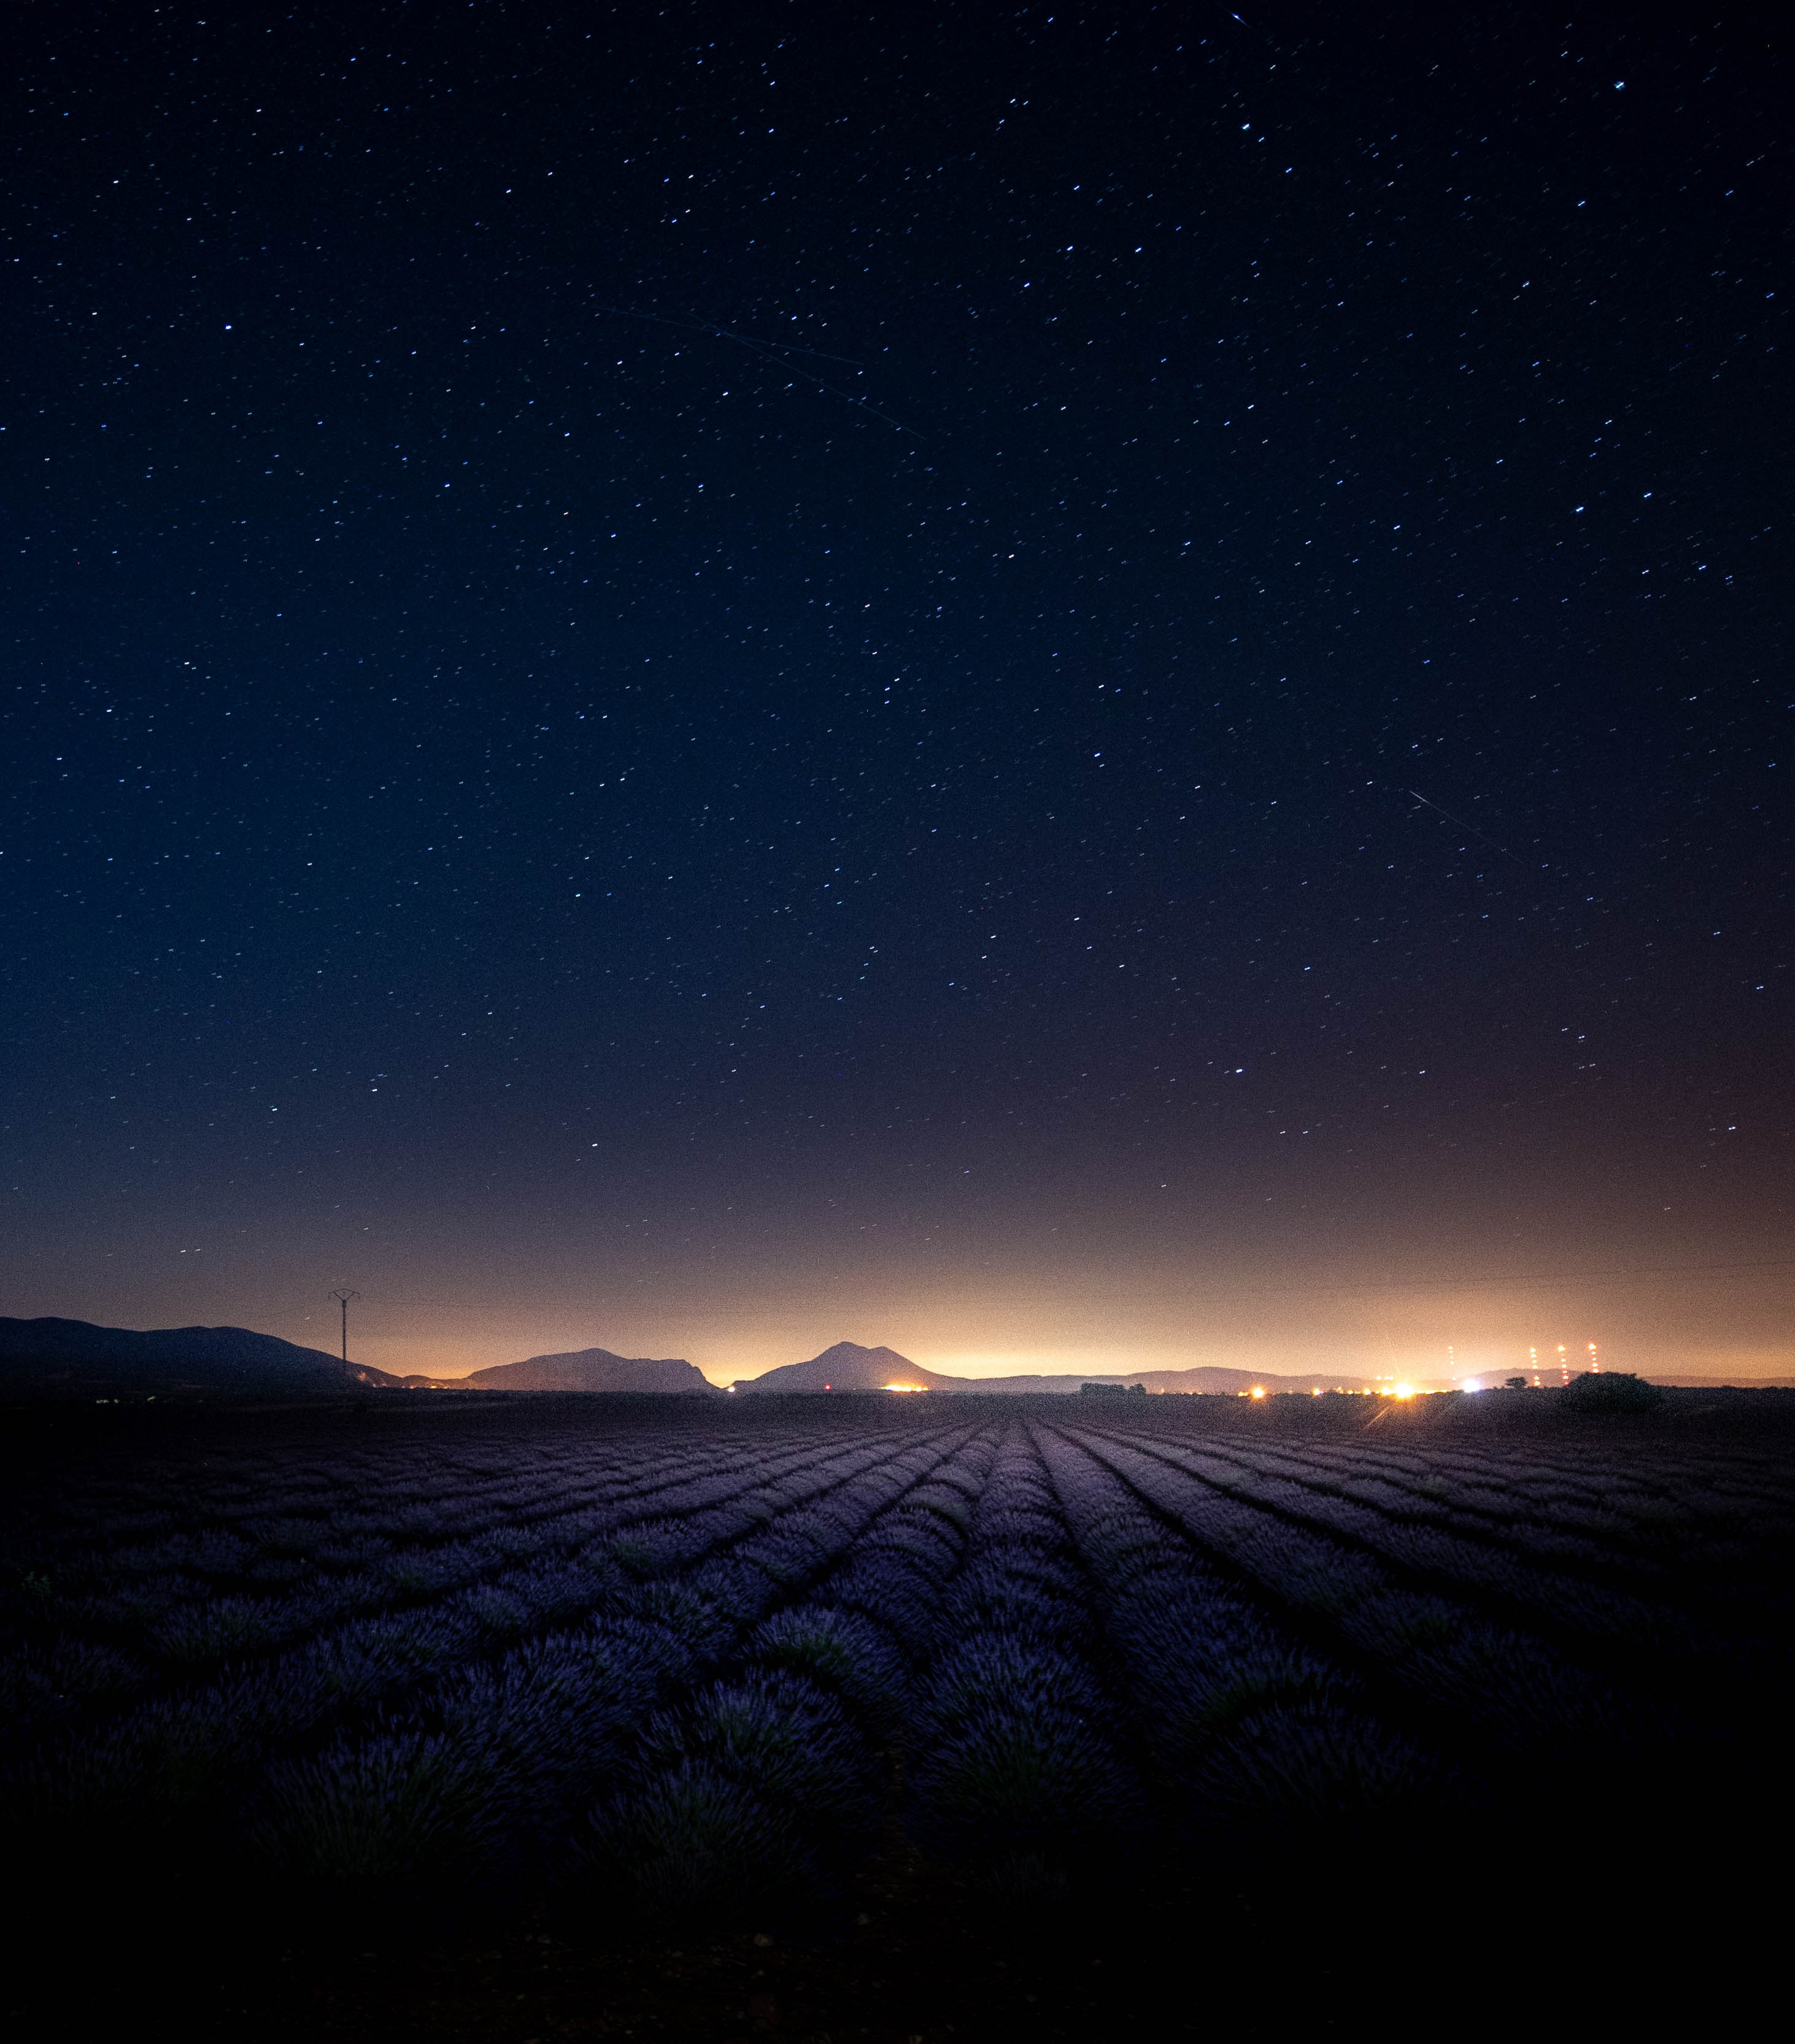 Photo of the starry night sky over lavender field